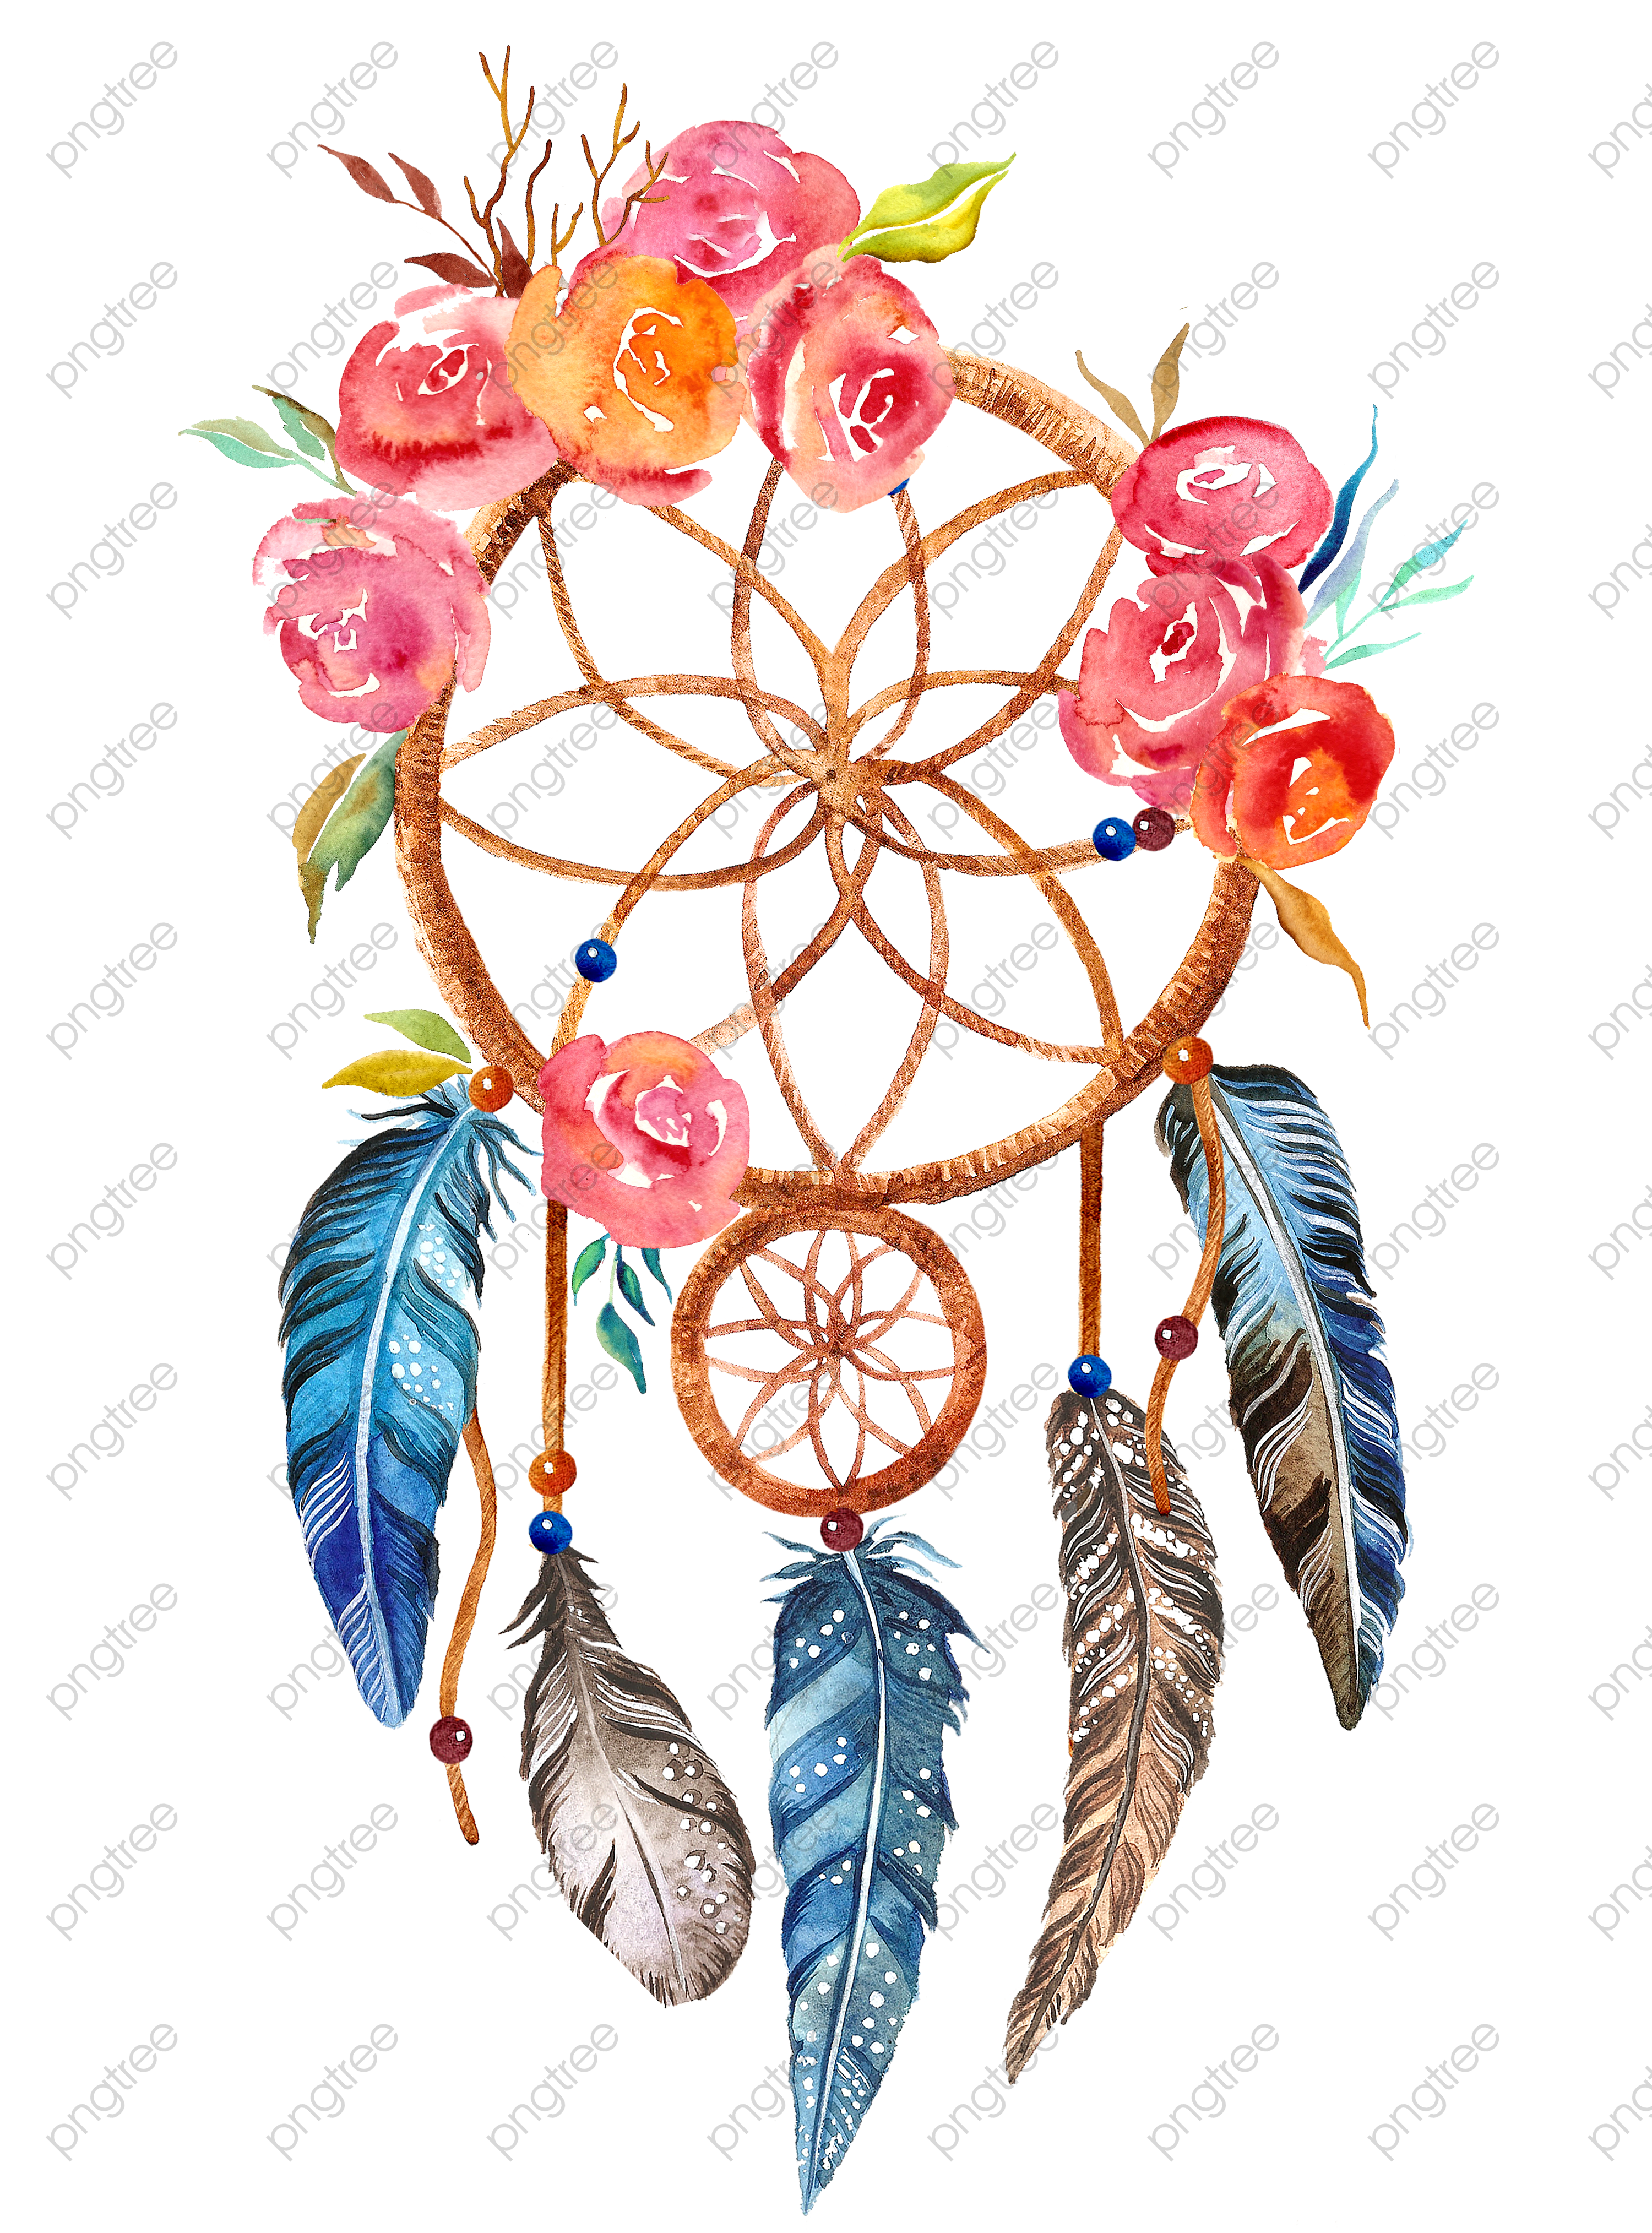 transparent dreamcatcher png format image with size 3000